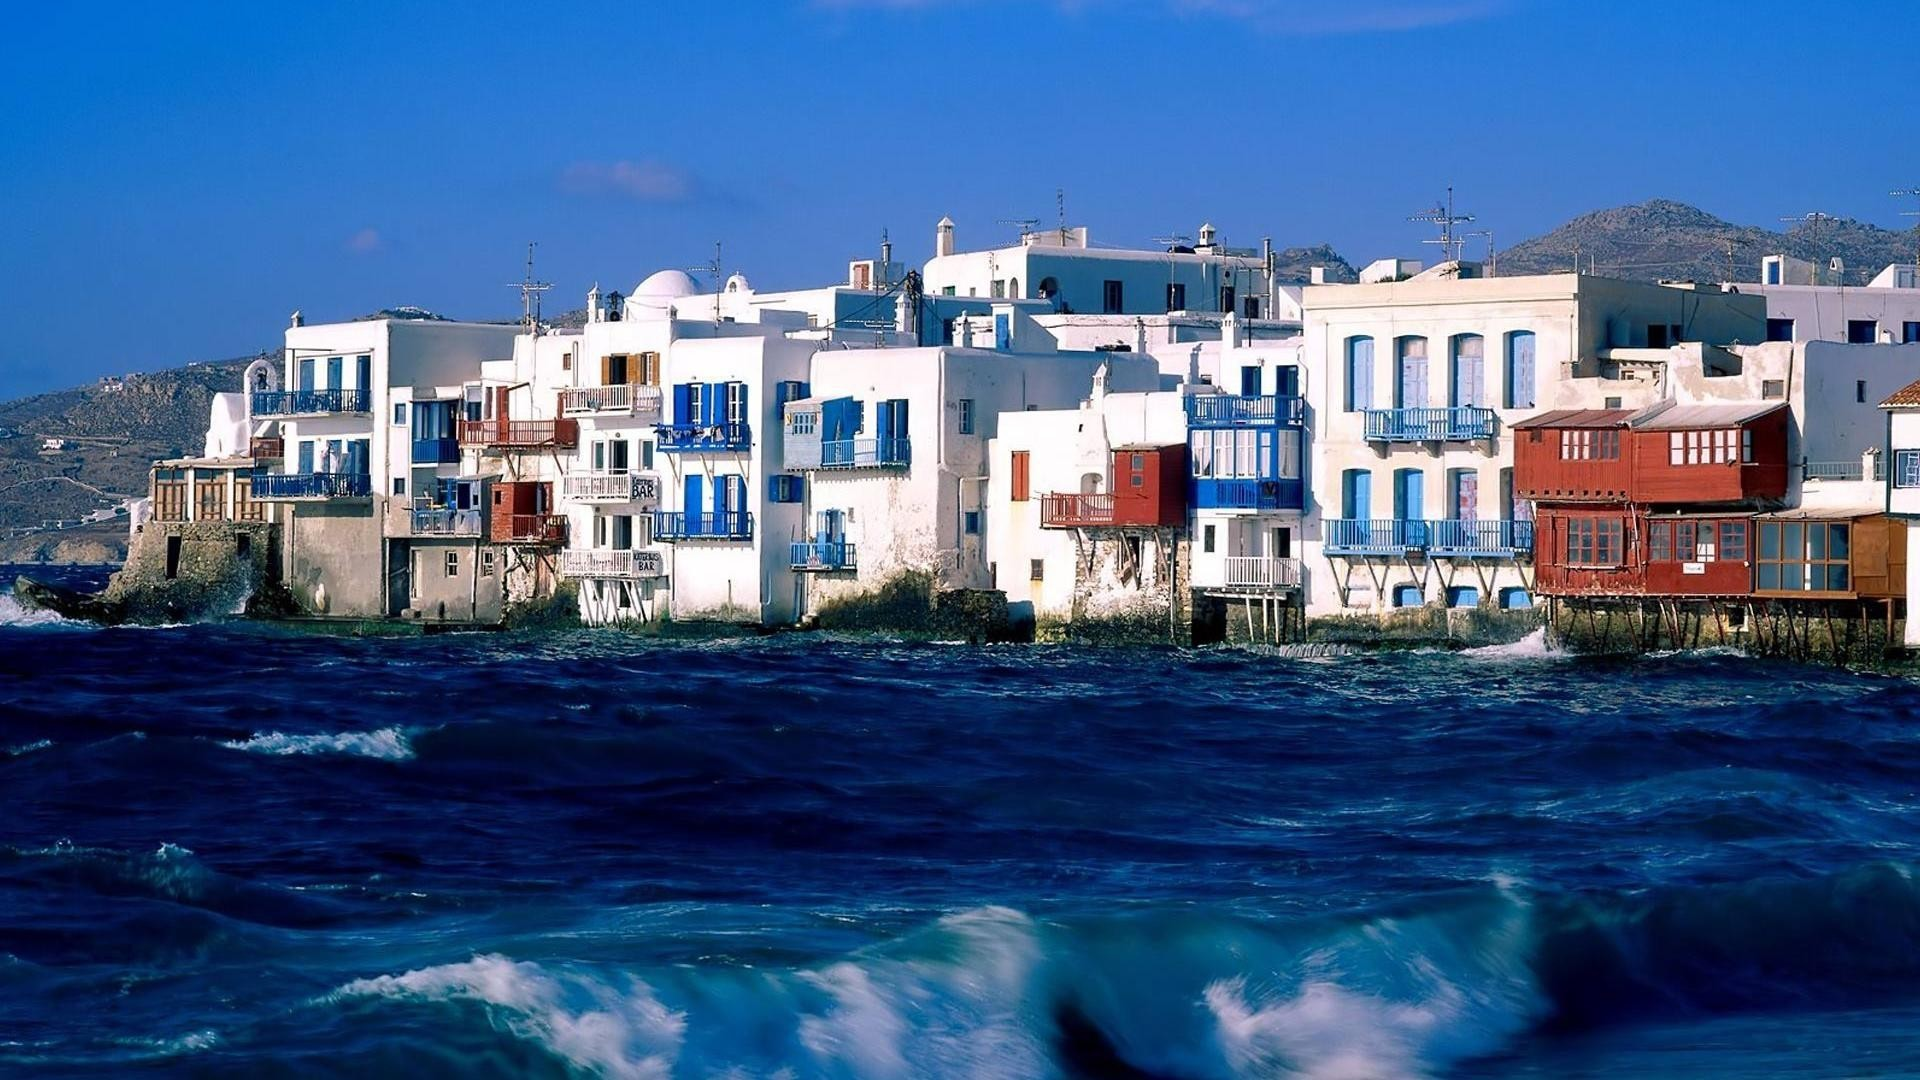 Cyclades-islands-in-mykonos-greece-1920x1080-islands-mykonos-greece-via-www-all-in-wallpaper-wp3604499